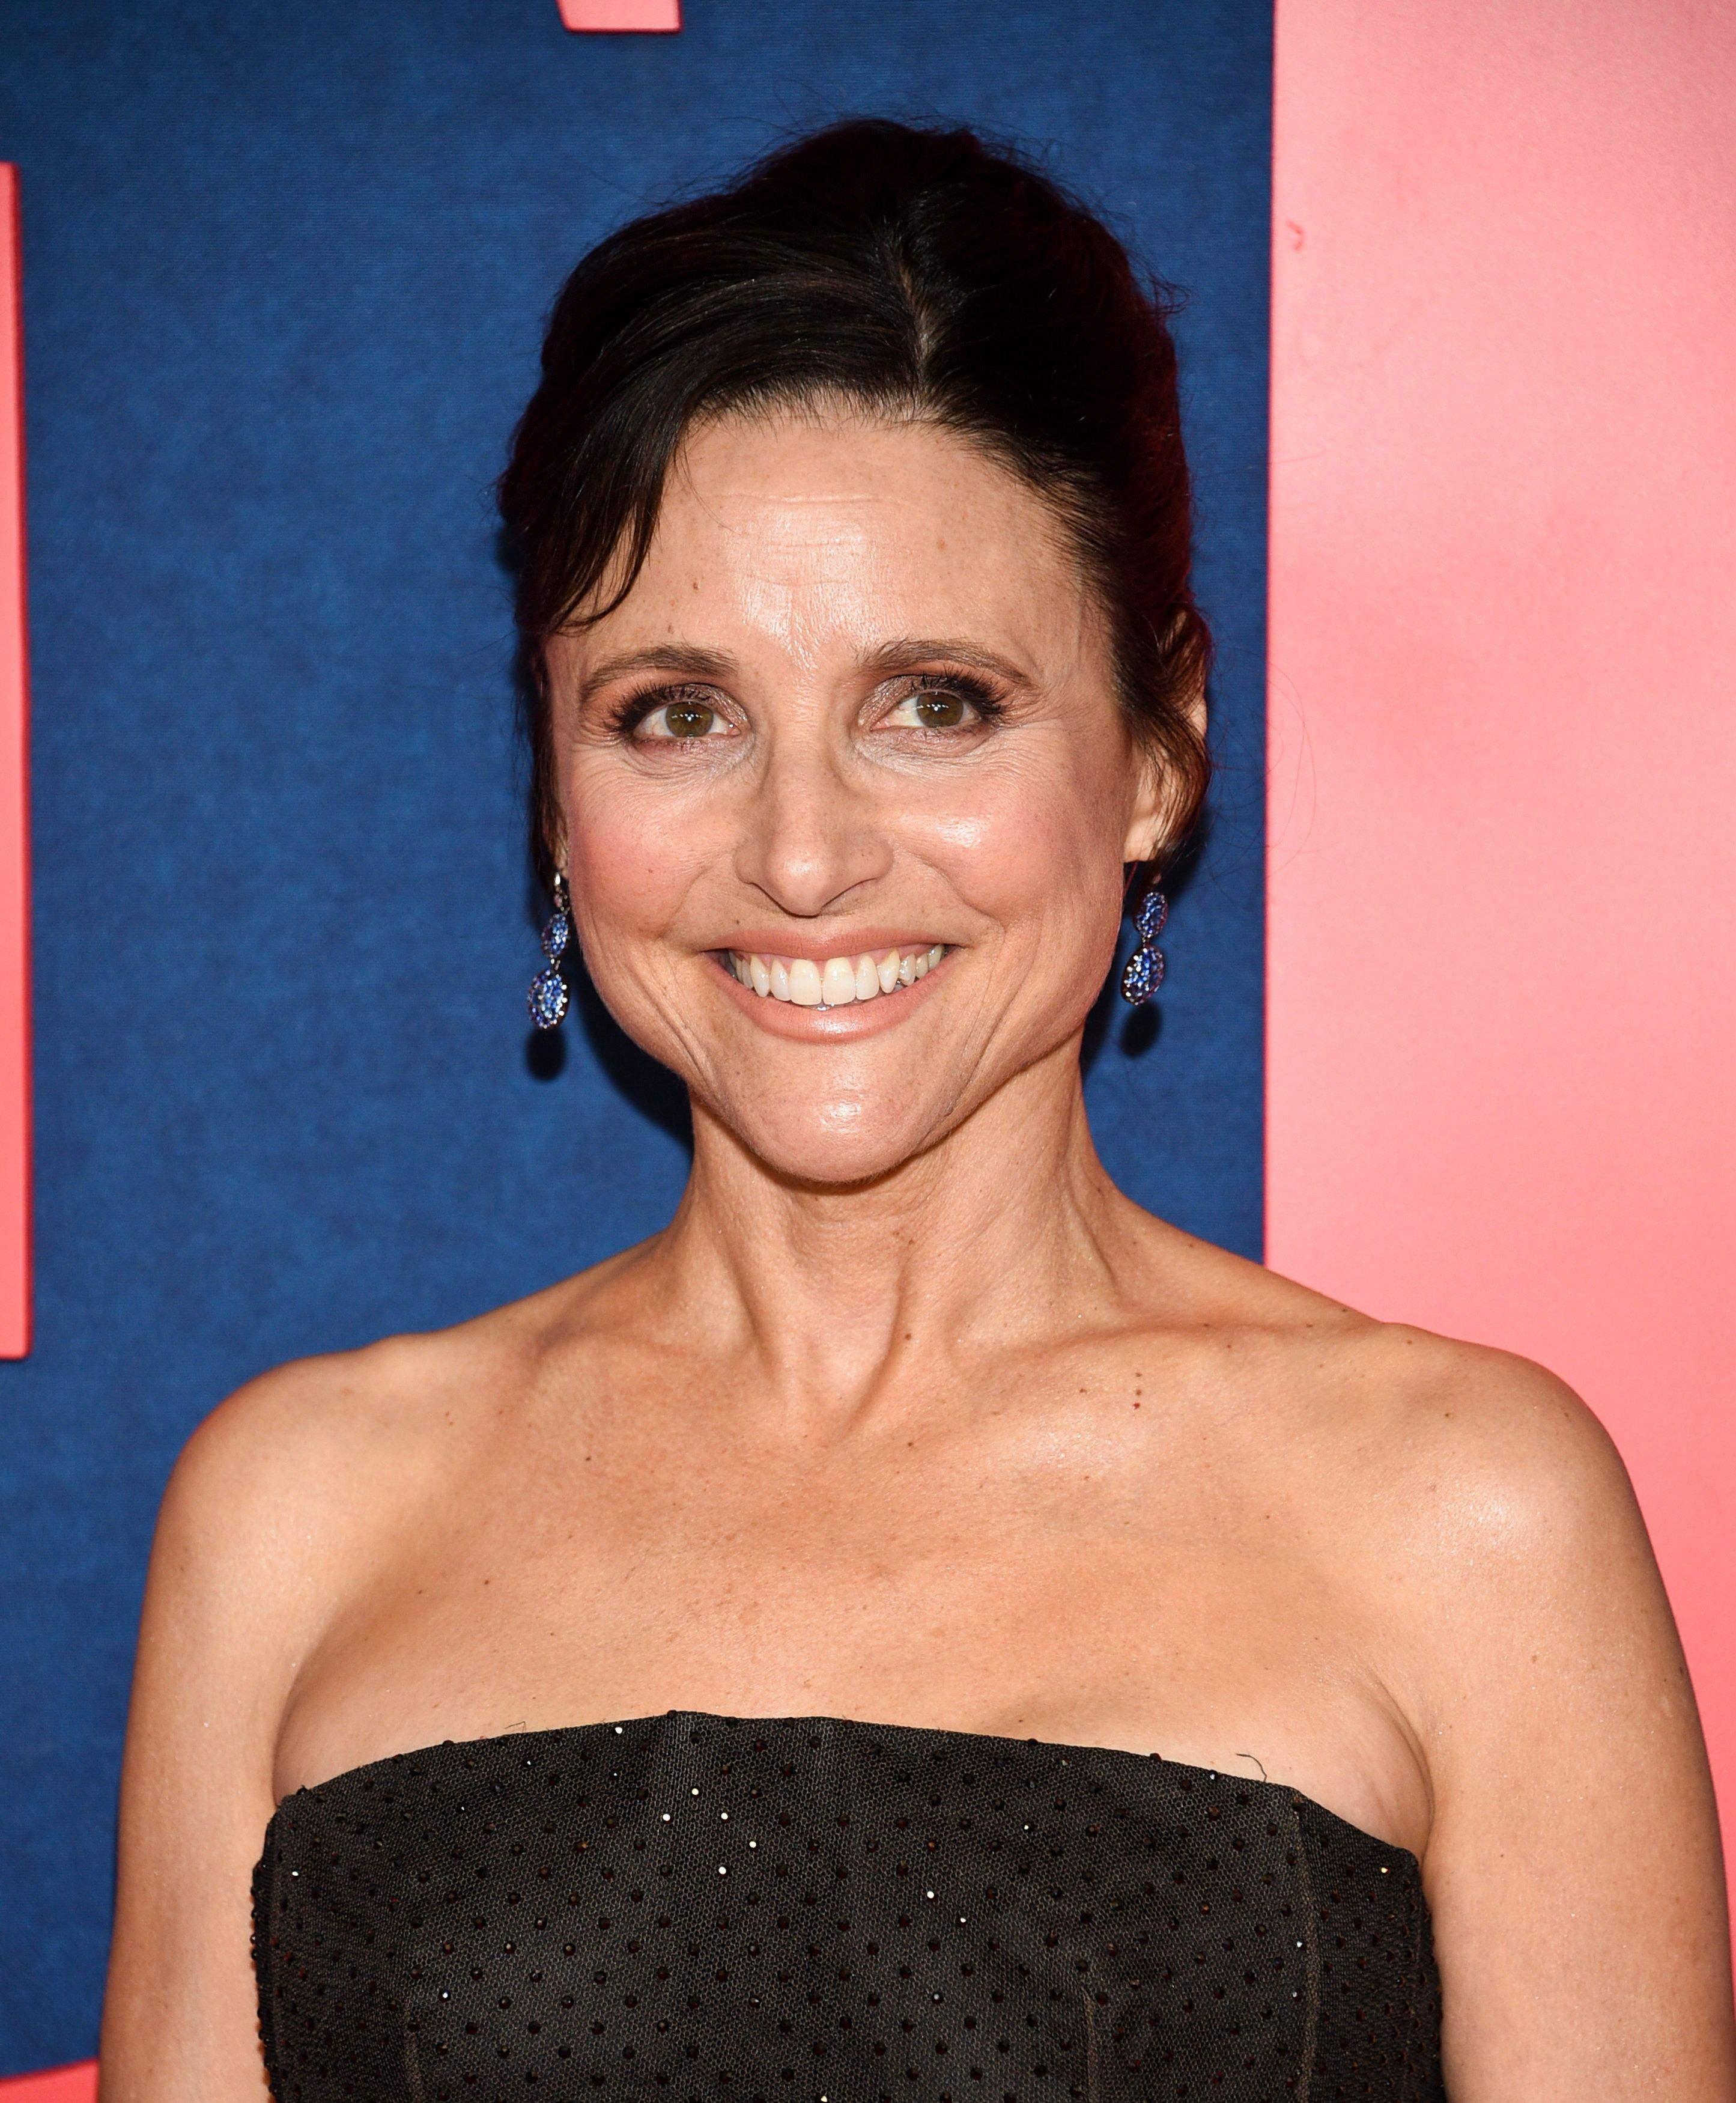 """Julia Louis-Dreyfu, who plays Selina Meyer on HBO's """"Veep,"""" at the premiere of the show's final season."""